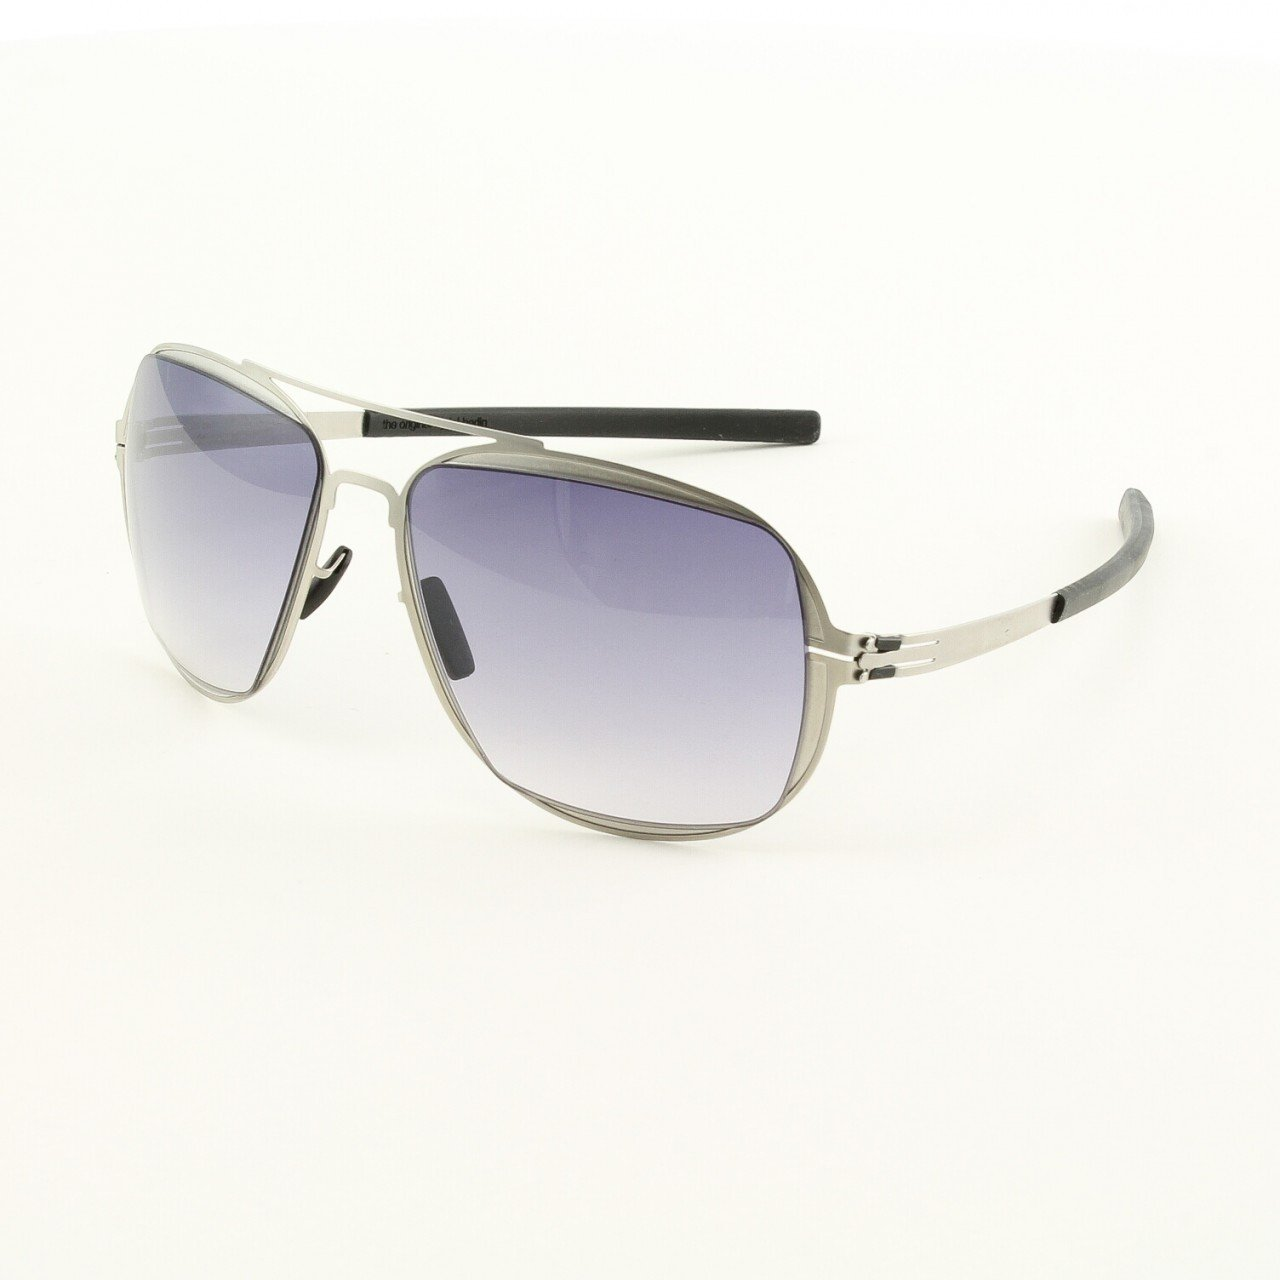 ic! Berlin Star Formation Sunglasses Col. Pearl with Grey Gradient Lenses